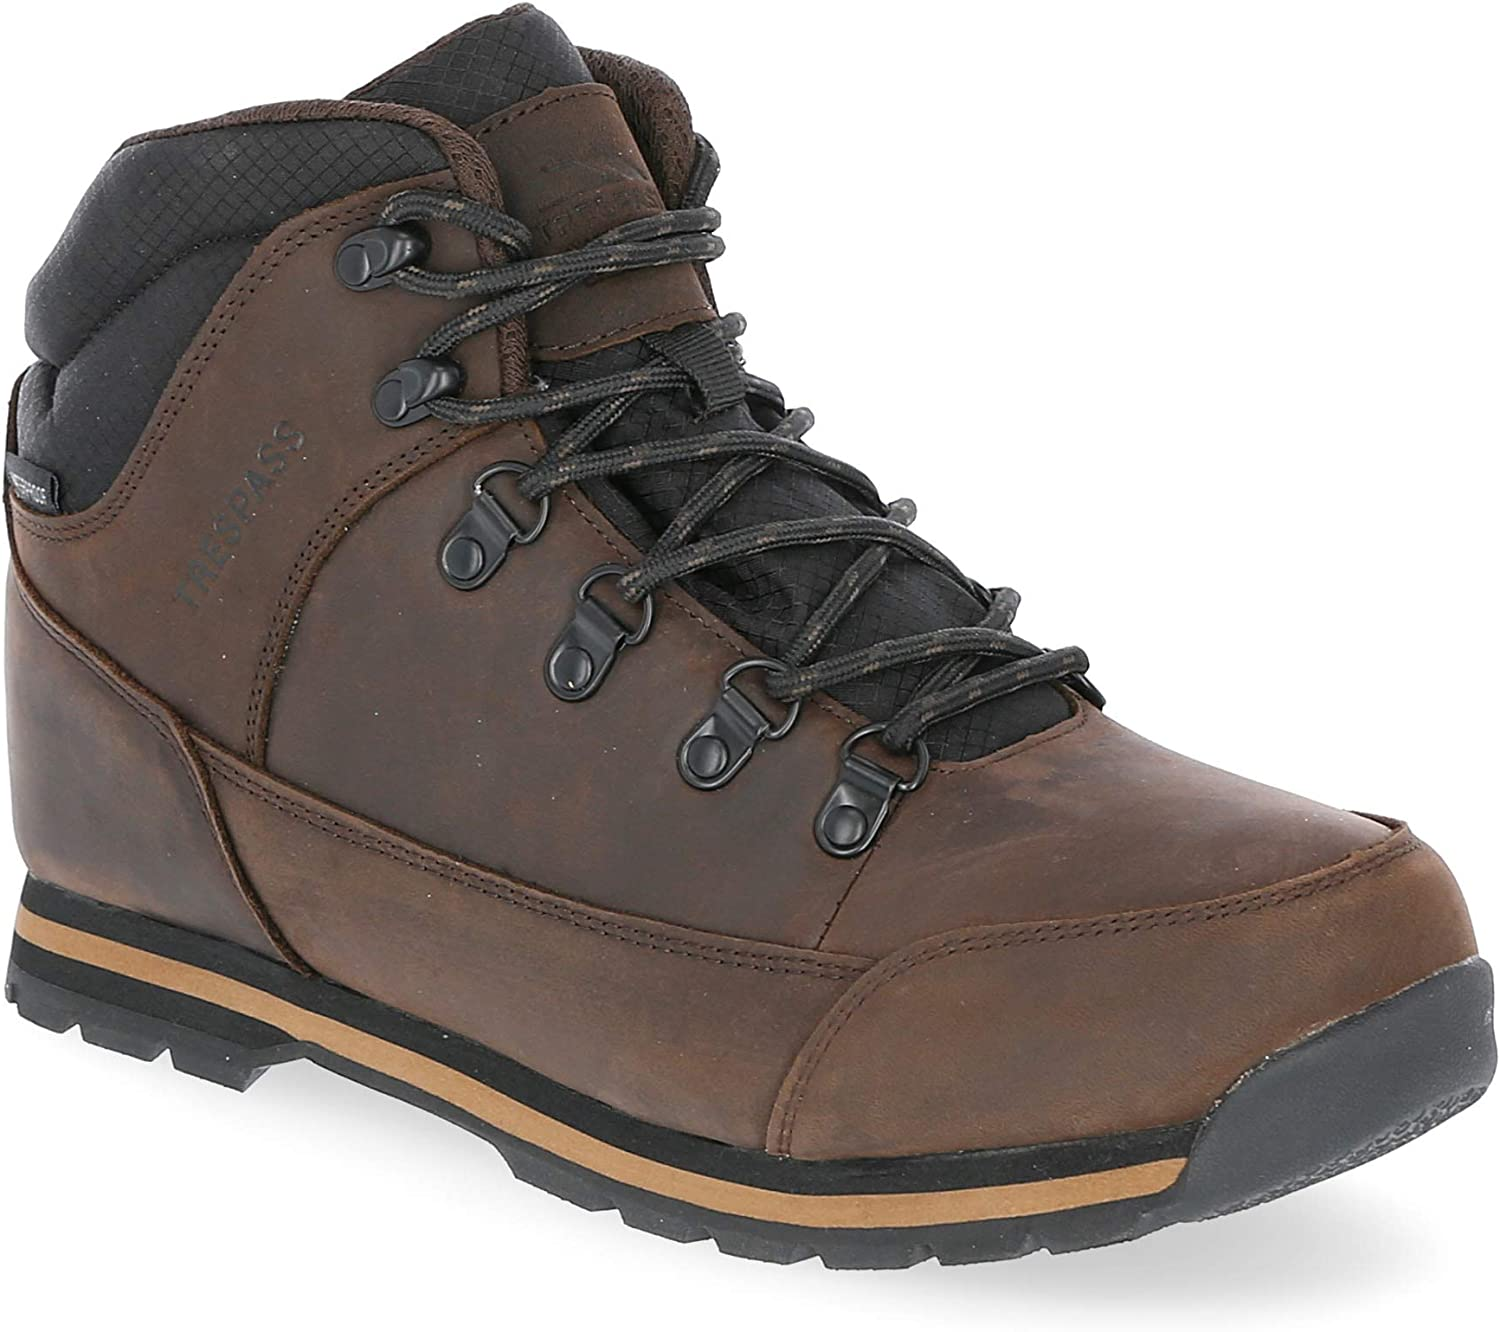 Trespass Super beauty product restock quality top! Men's Jericho Spring new work High Shoes Hiking Rise